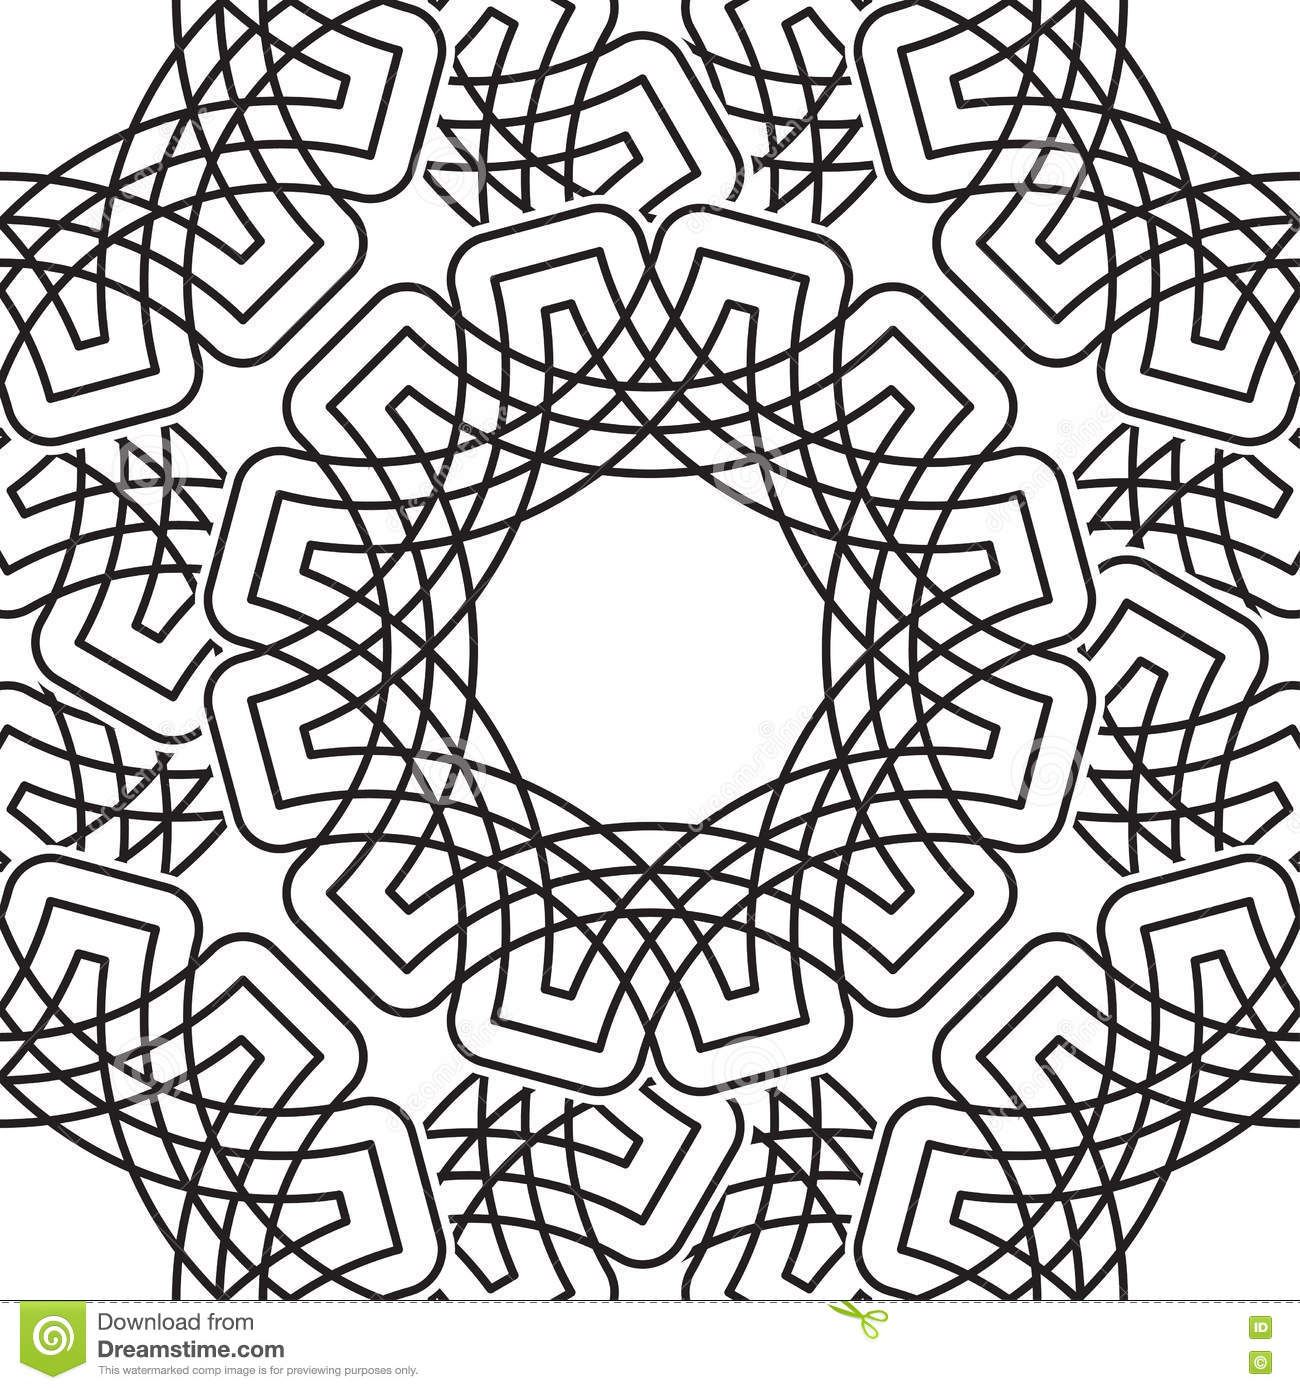 circular coloring pages - ornate cartoons illustrations vector stock images